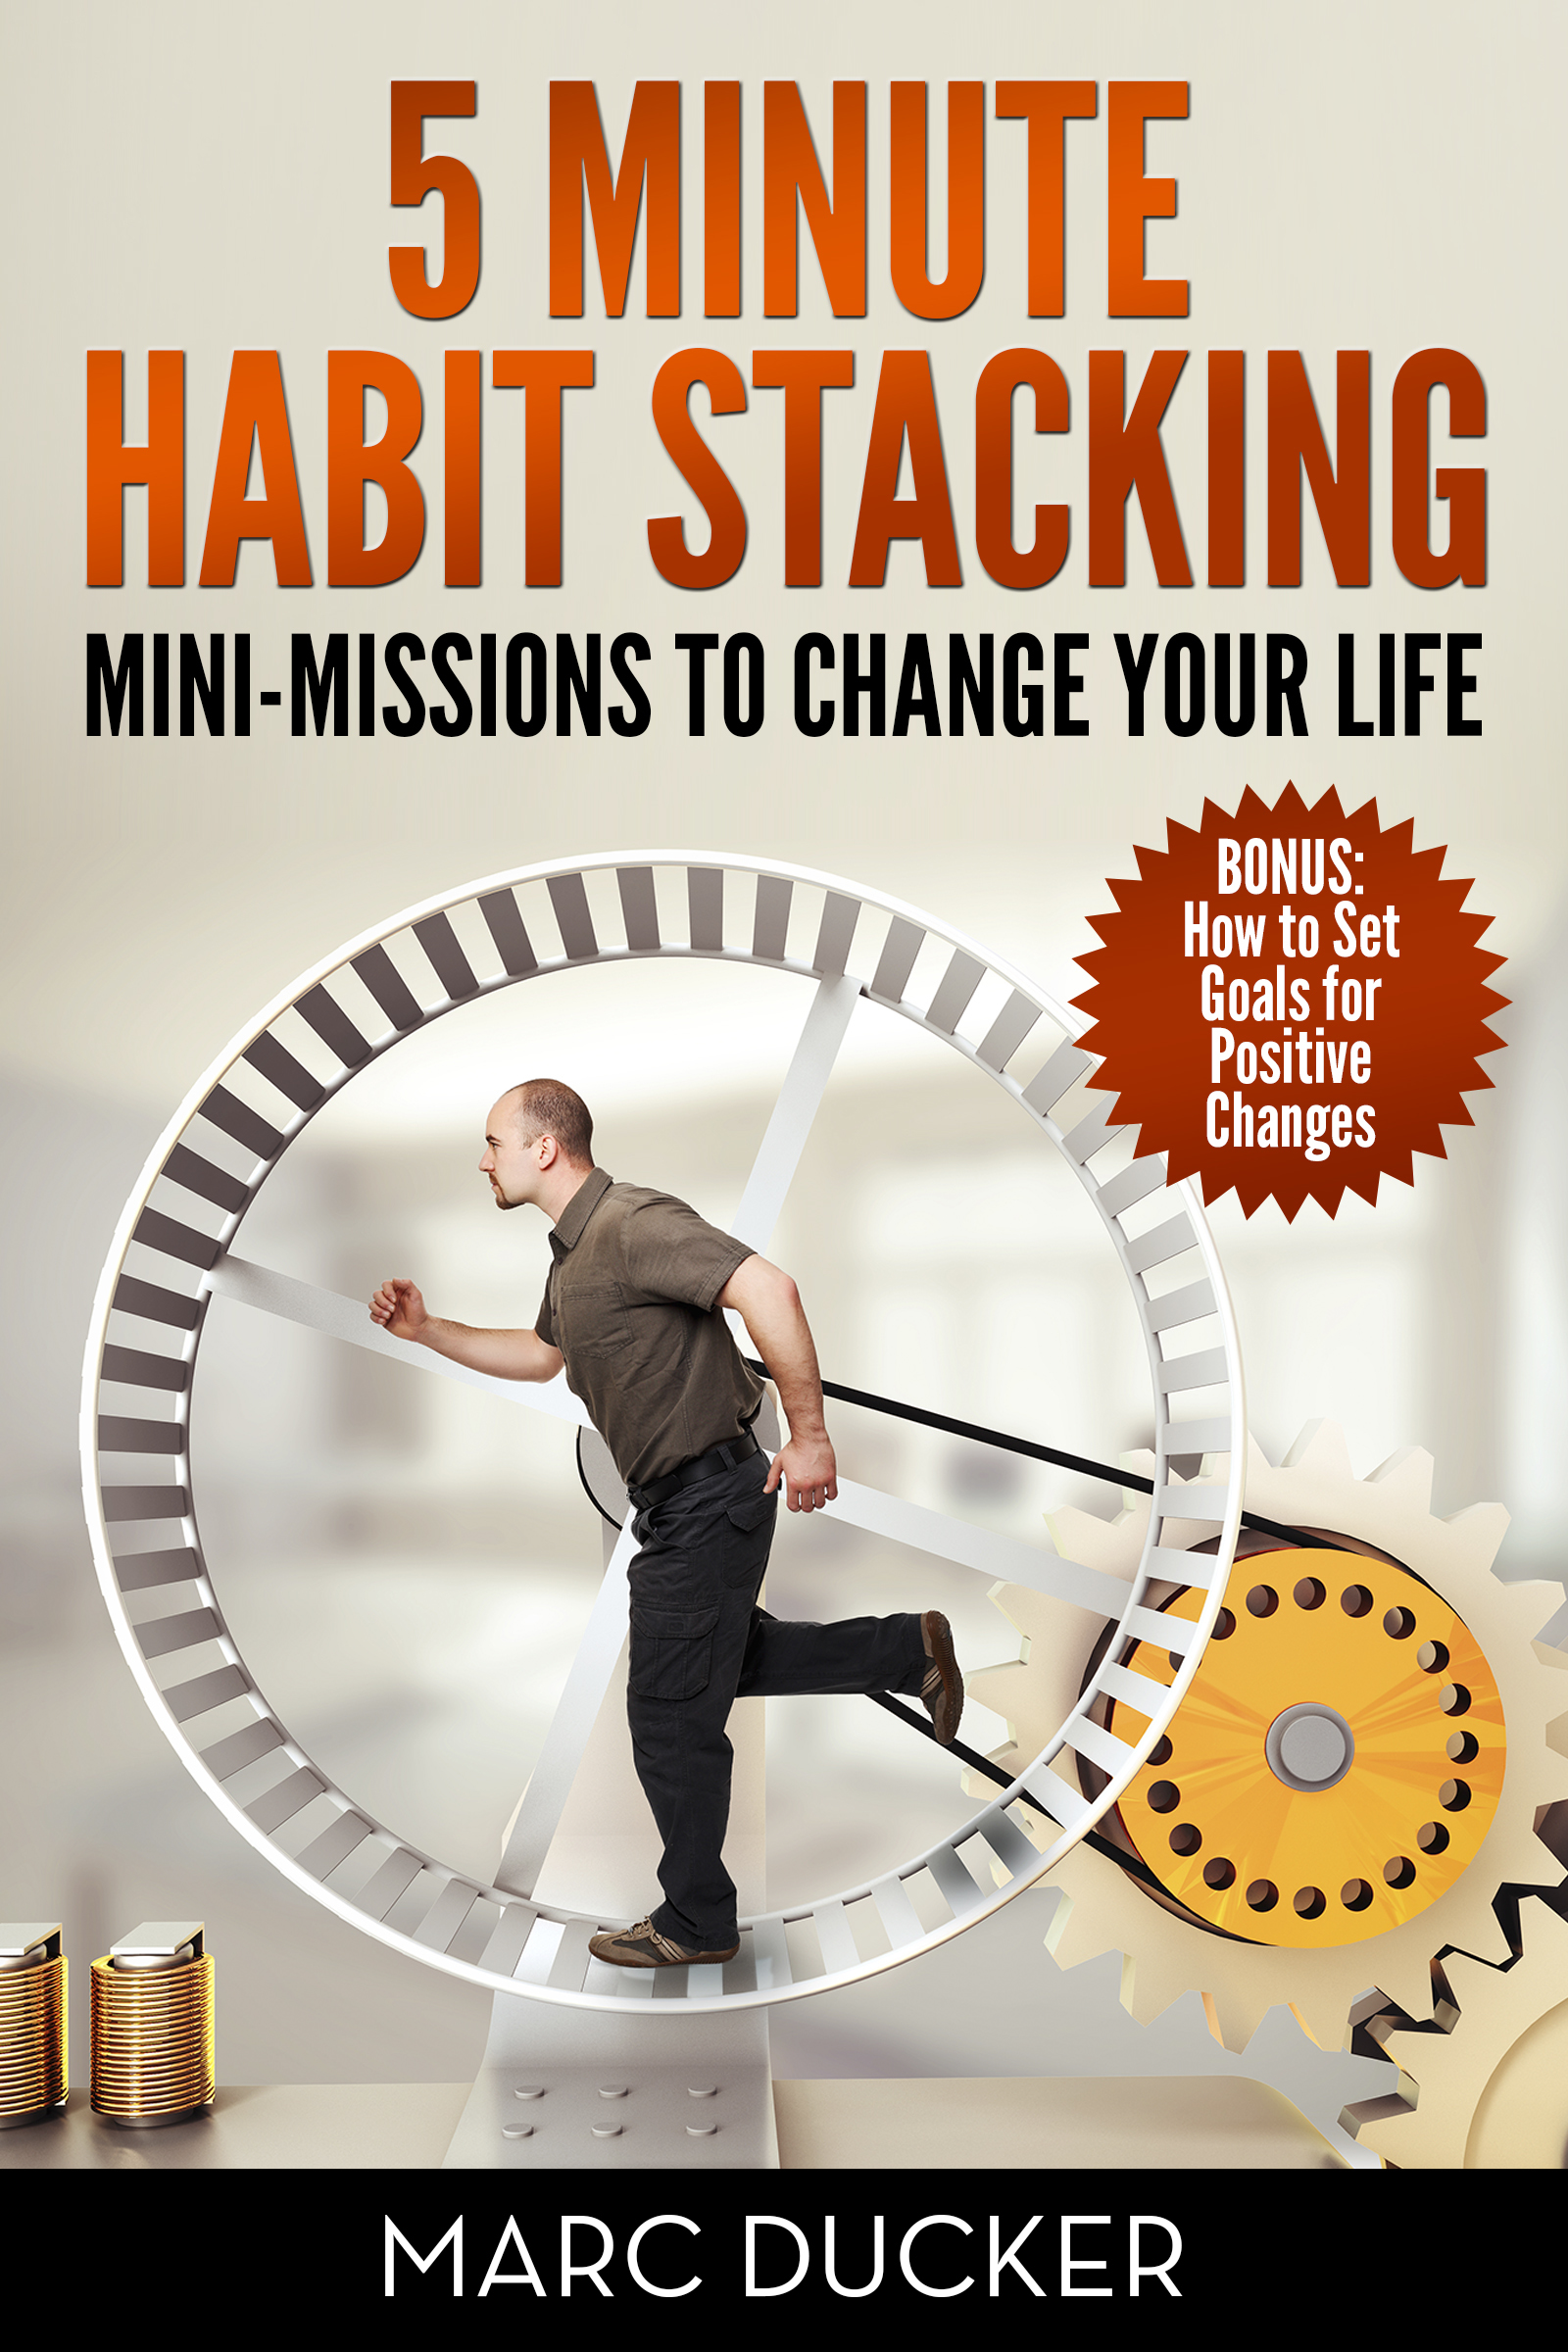 5 Minute Habit Stacking: Mini-Missions to Change Your Life!